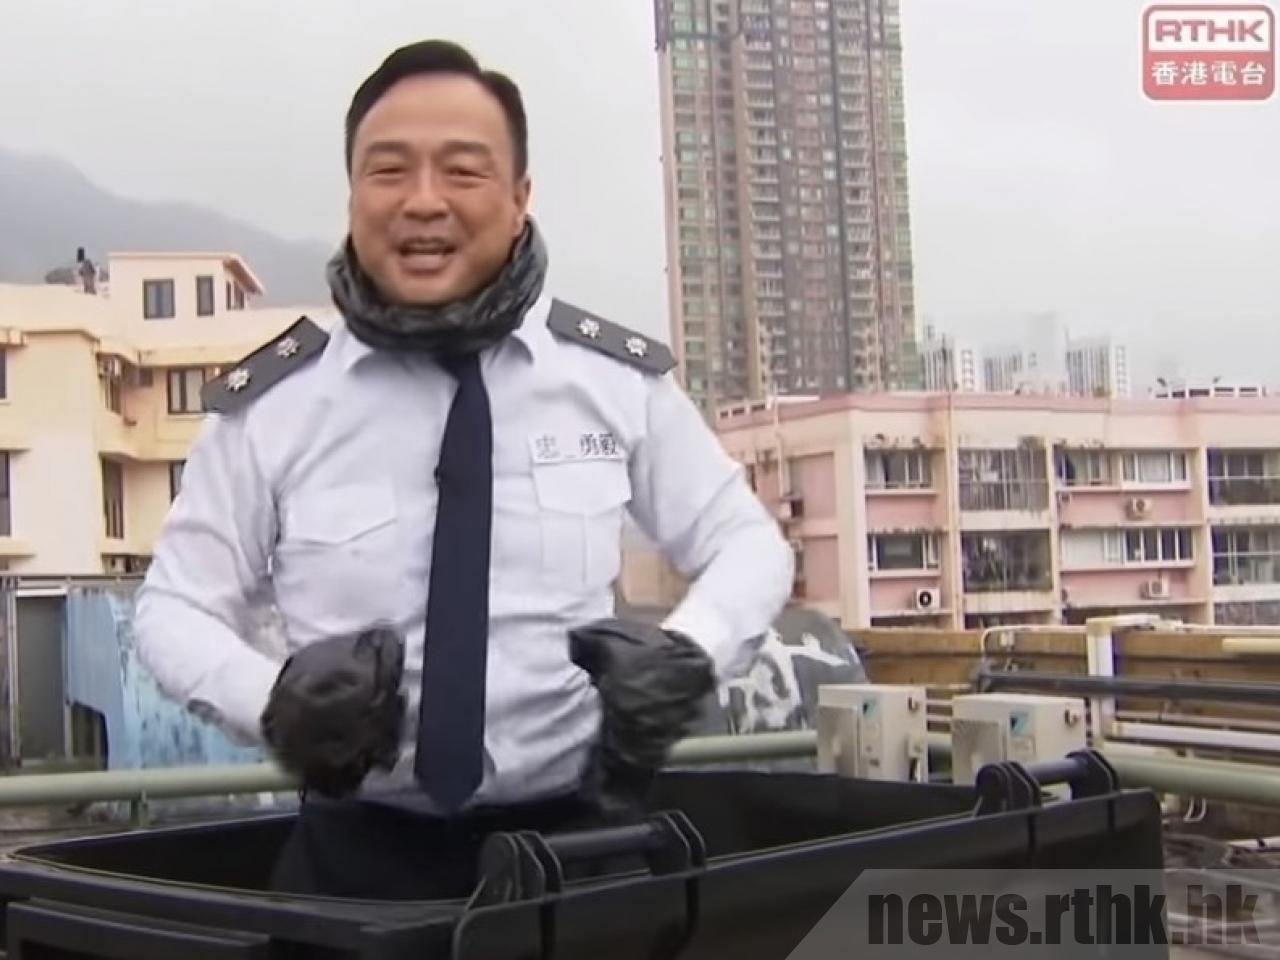 The High Court heard that it was plainly insulting to the police when the host of RTHK's Headliner show emerged from a rubbish bin dressed as an officer.